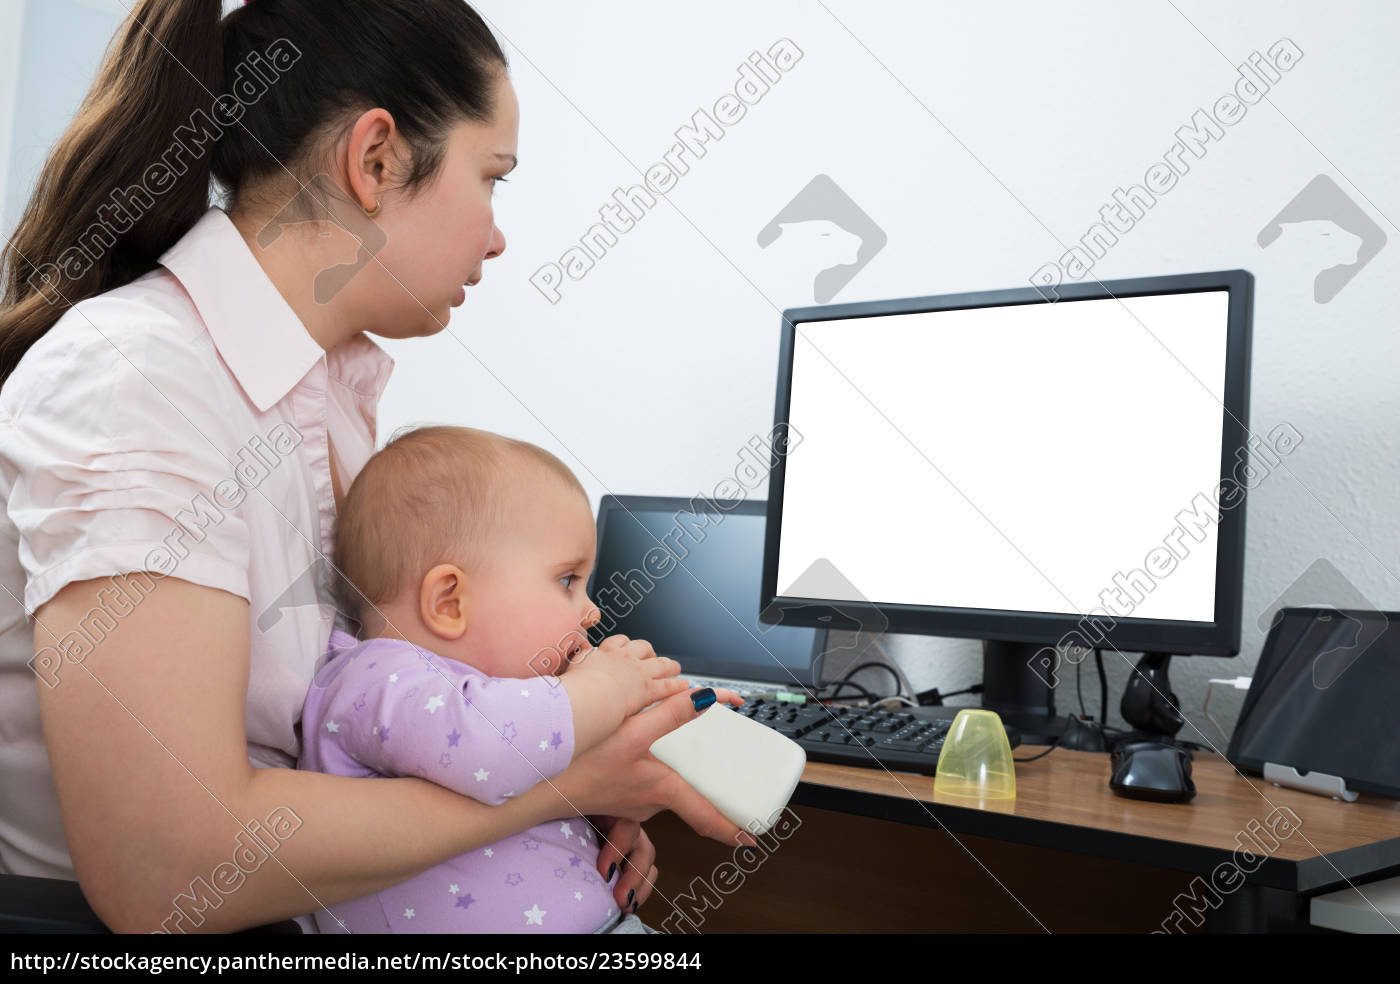 woman, with, her, baby, using, computer - 23599844